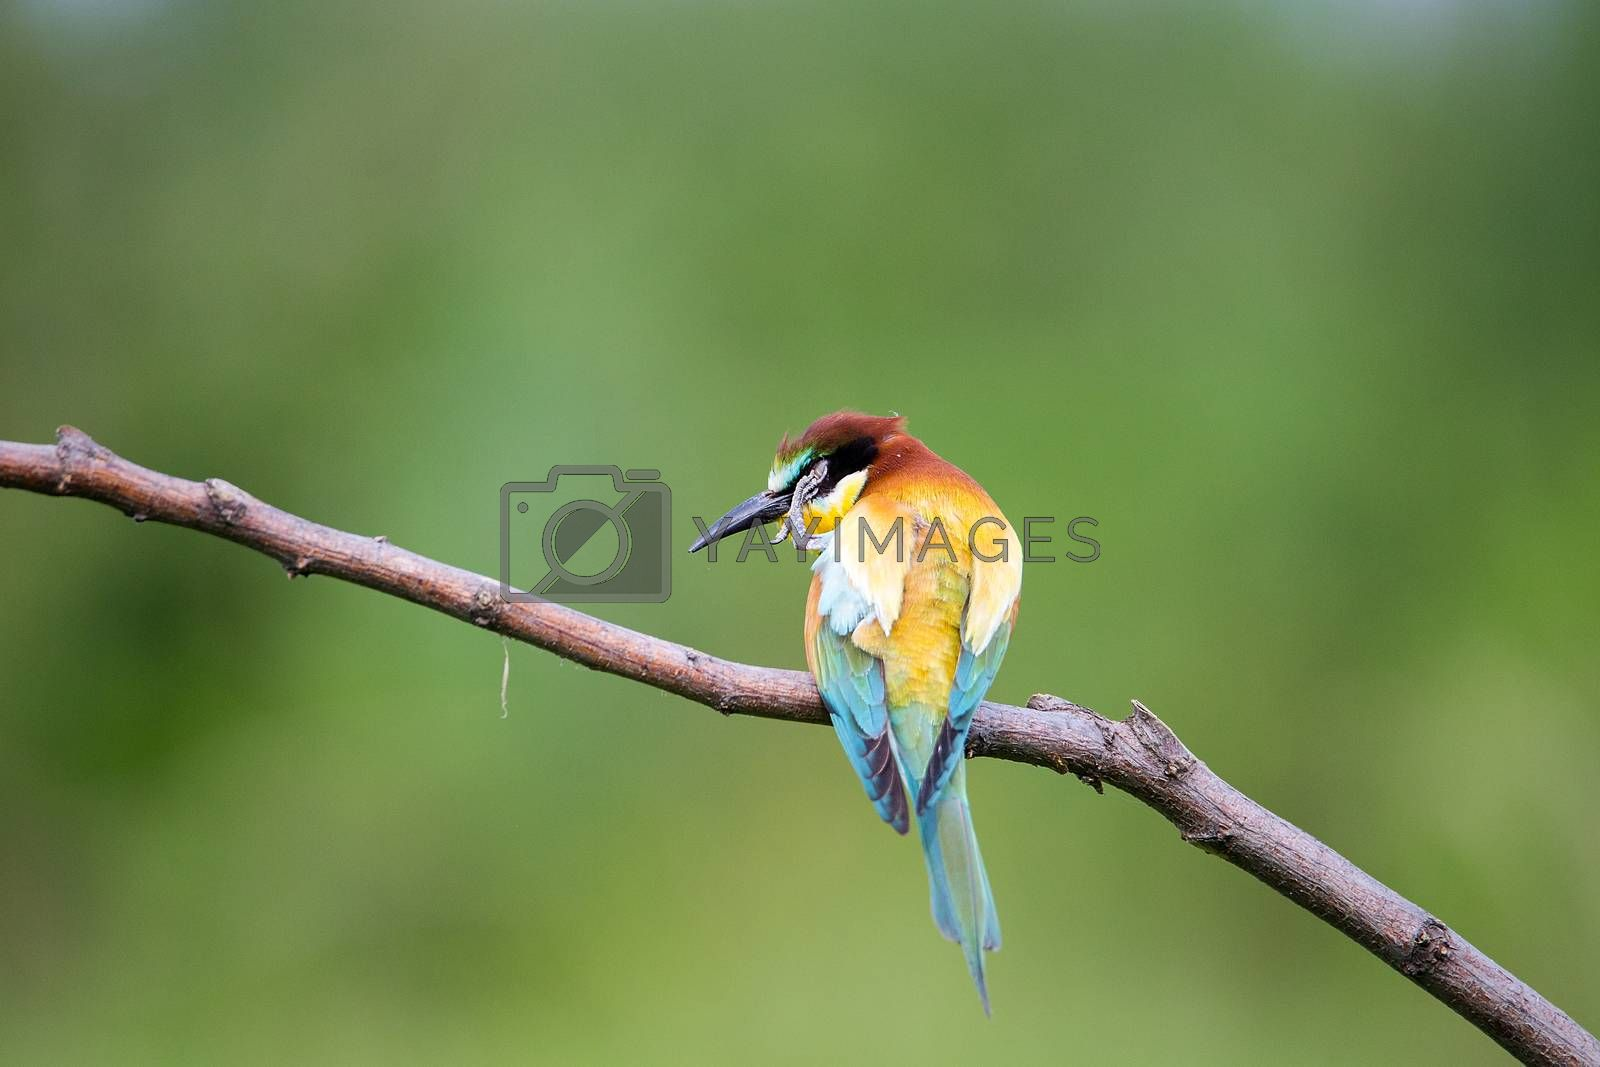 Bee-eater (Merops apiaster) scratching and washing on brunch - tropical colours bird, Isola della Cona, Monfalcone, Italy, Europe